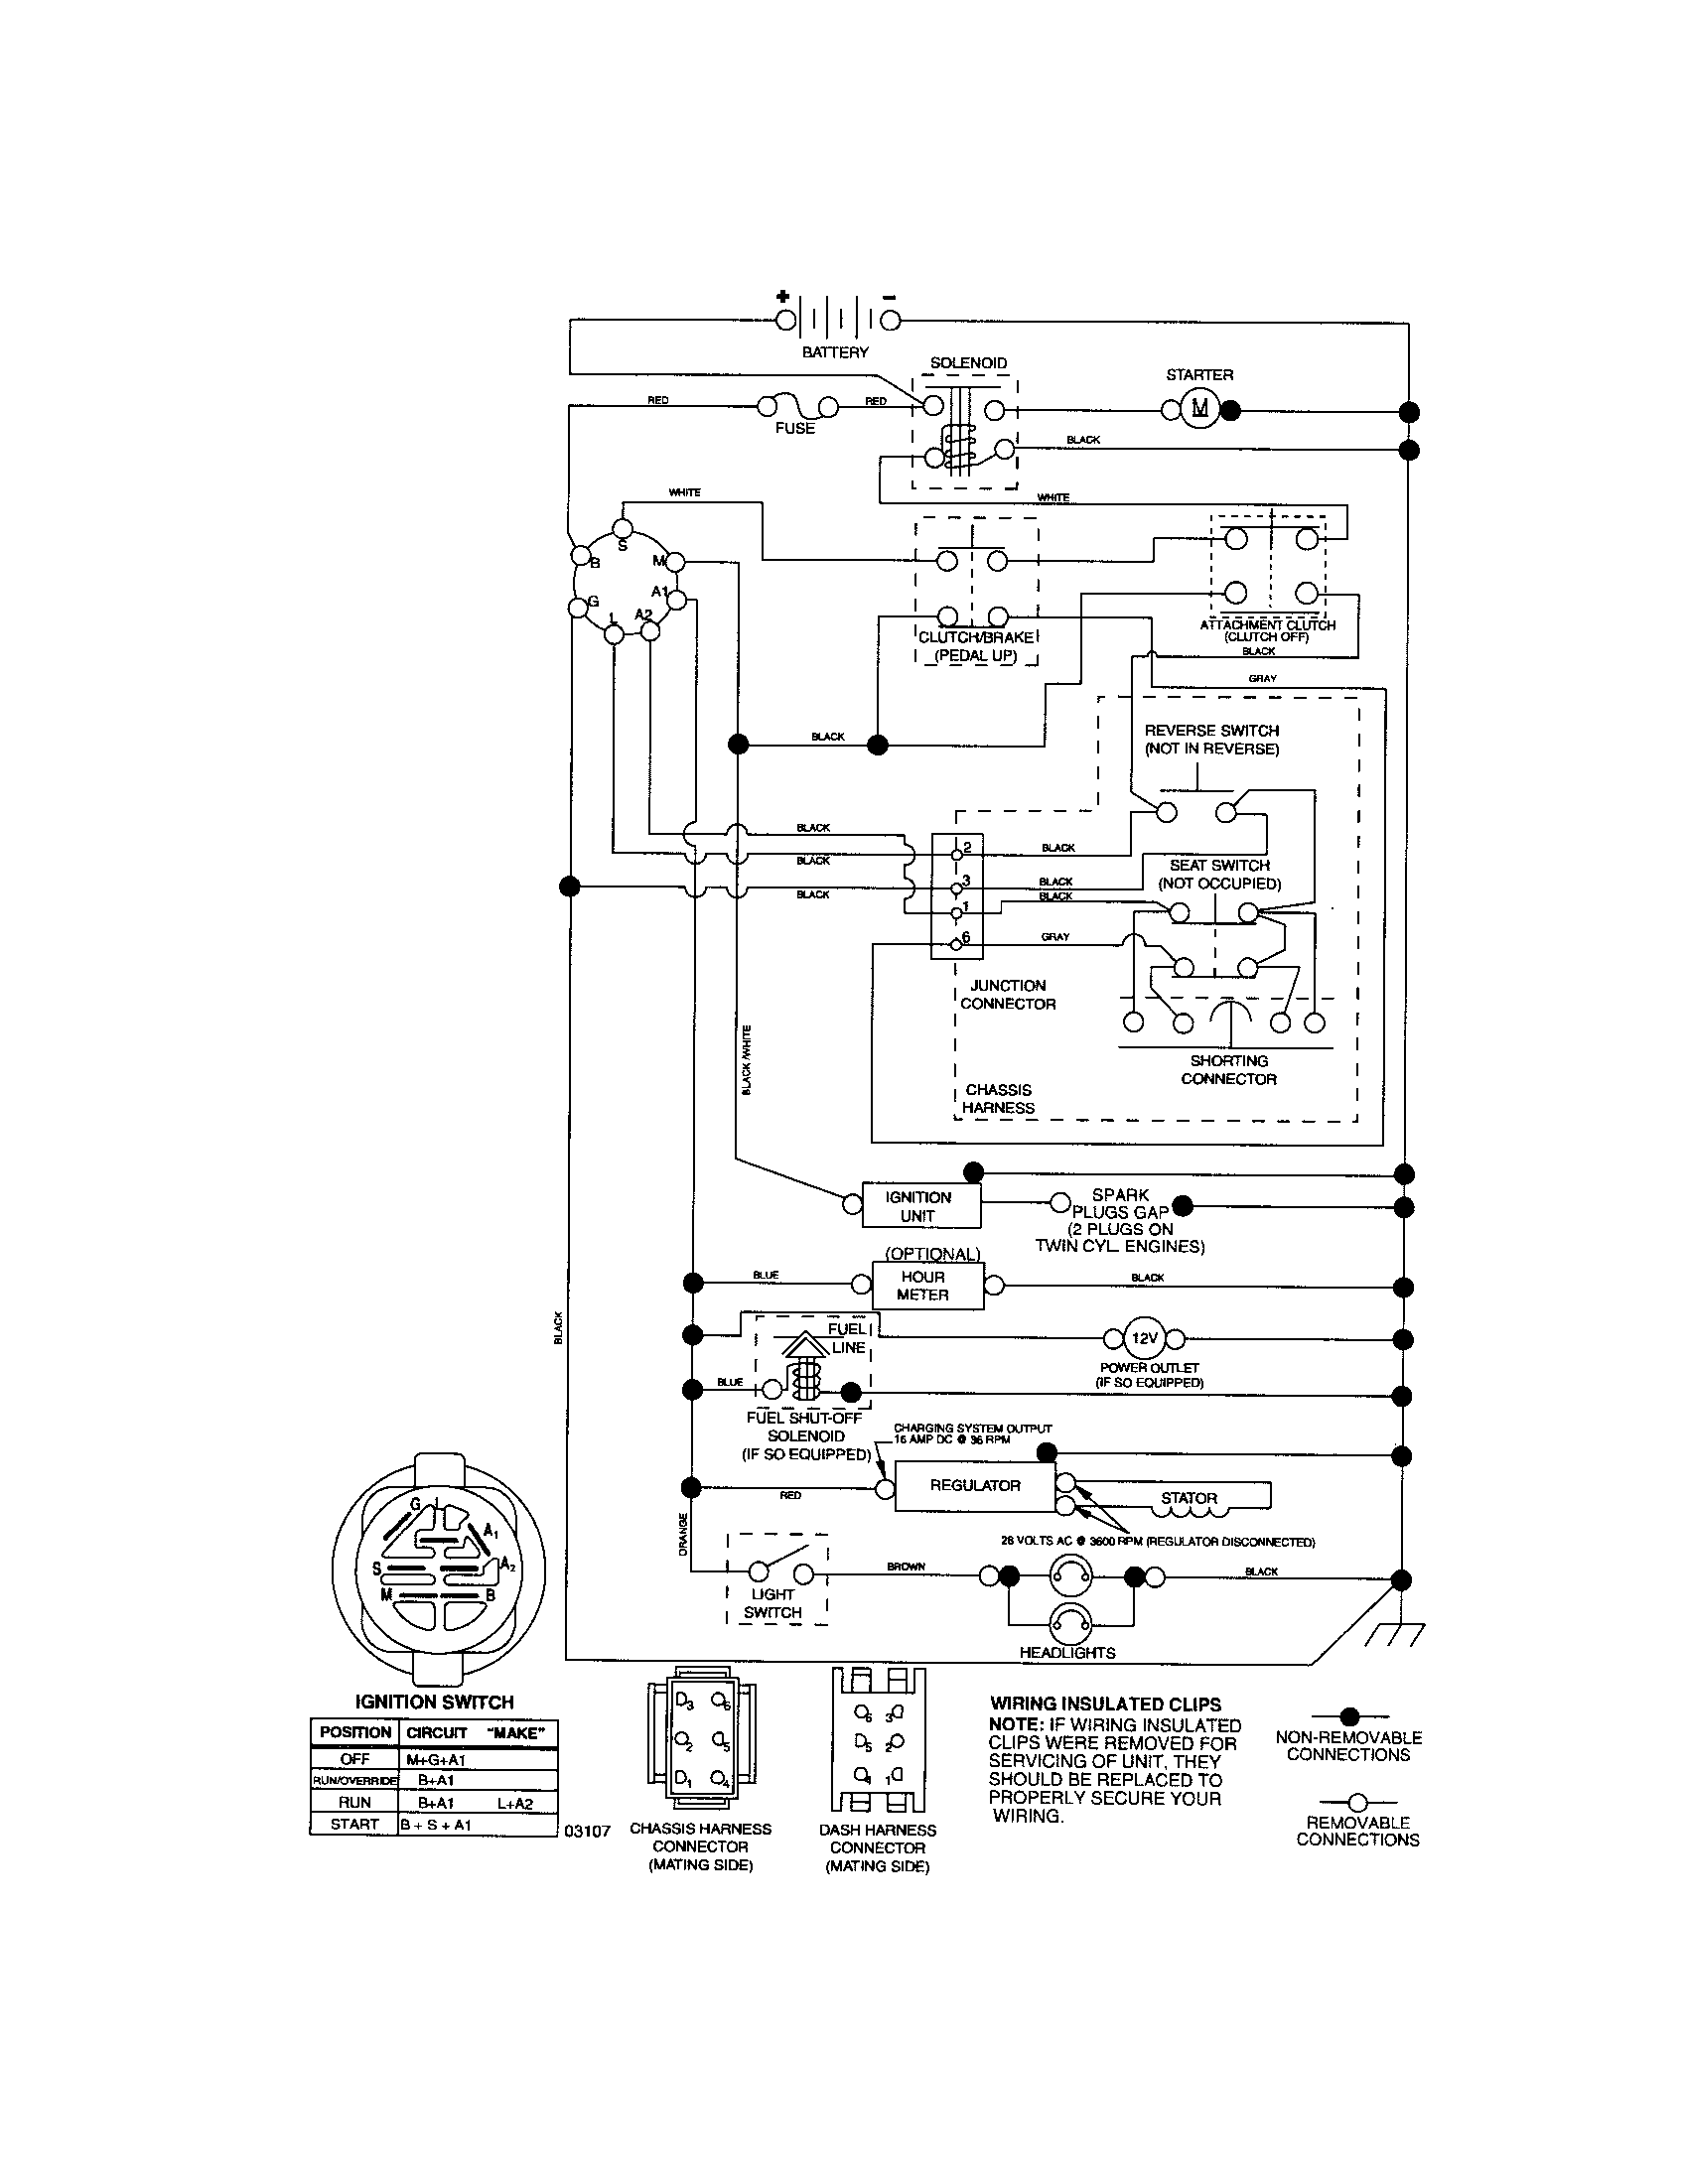 6af5f1447fd13c8443376822ddc1e105 craftsman riding mower electrical diagram wiring diagram bad boy mower wiring diagram at creativeand.co